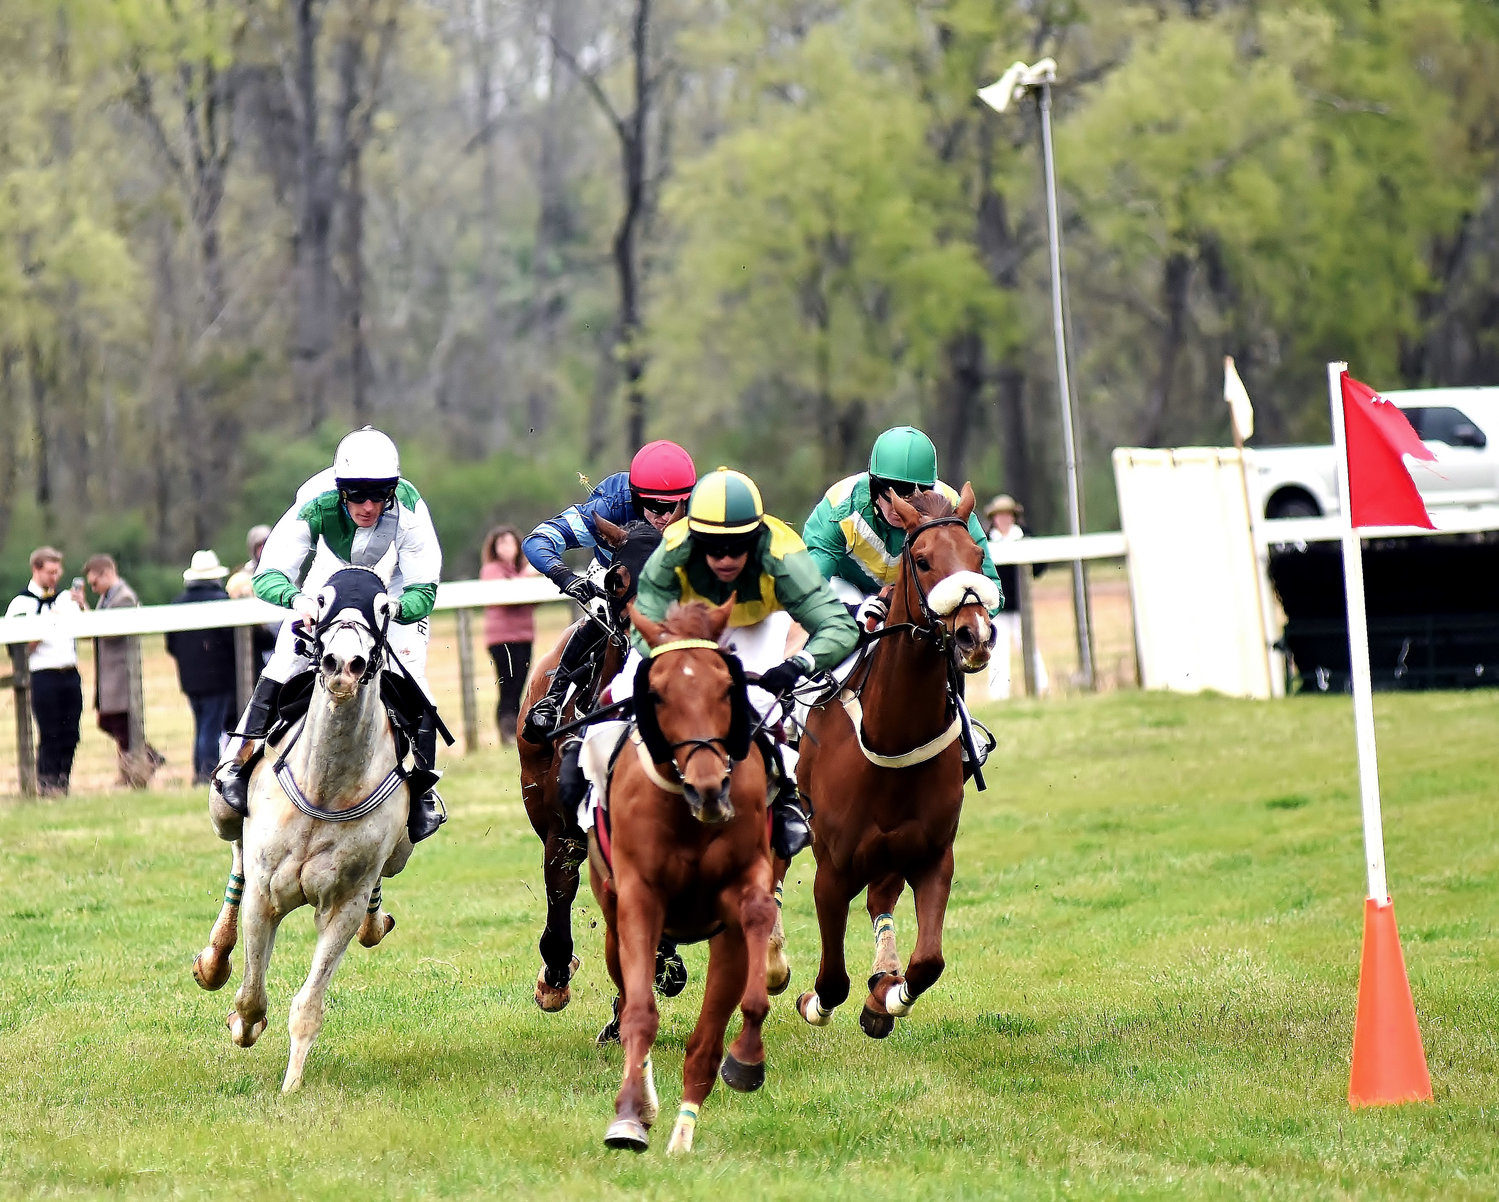 Horses round a curve in the inaugural Georgia Steeplechase race meet at Kingston Downs.